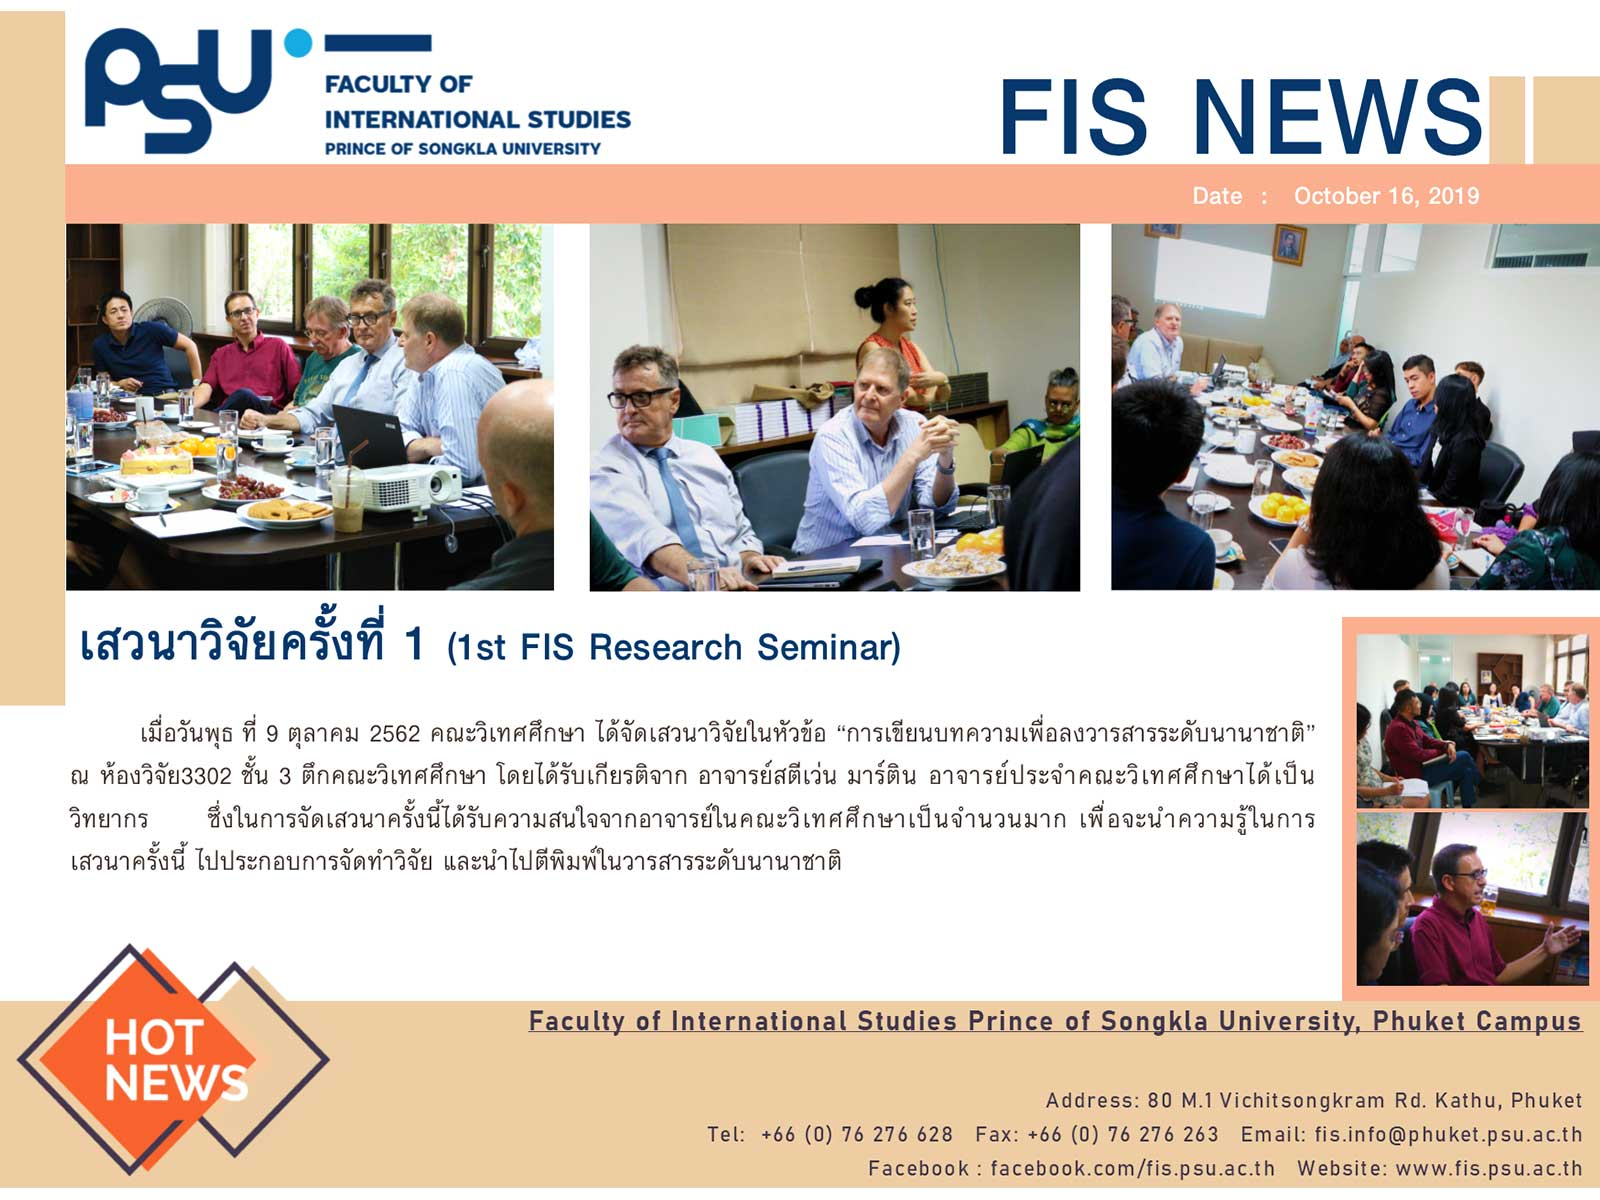 Prince of Songkla University News |  Faculty of International Studies 1st FIS Research Seminar |  Asst Prof Dr Steven Andrew Martin